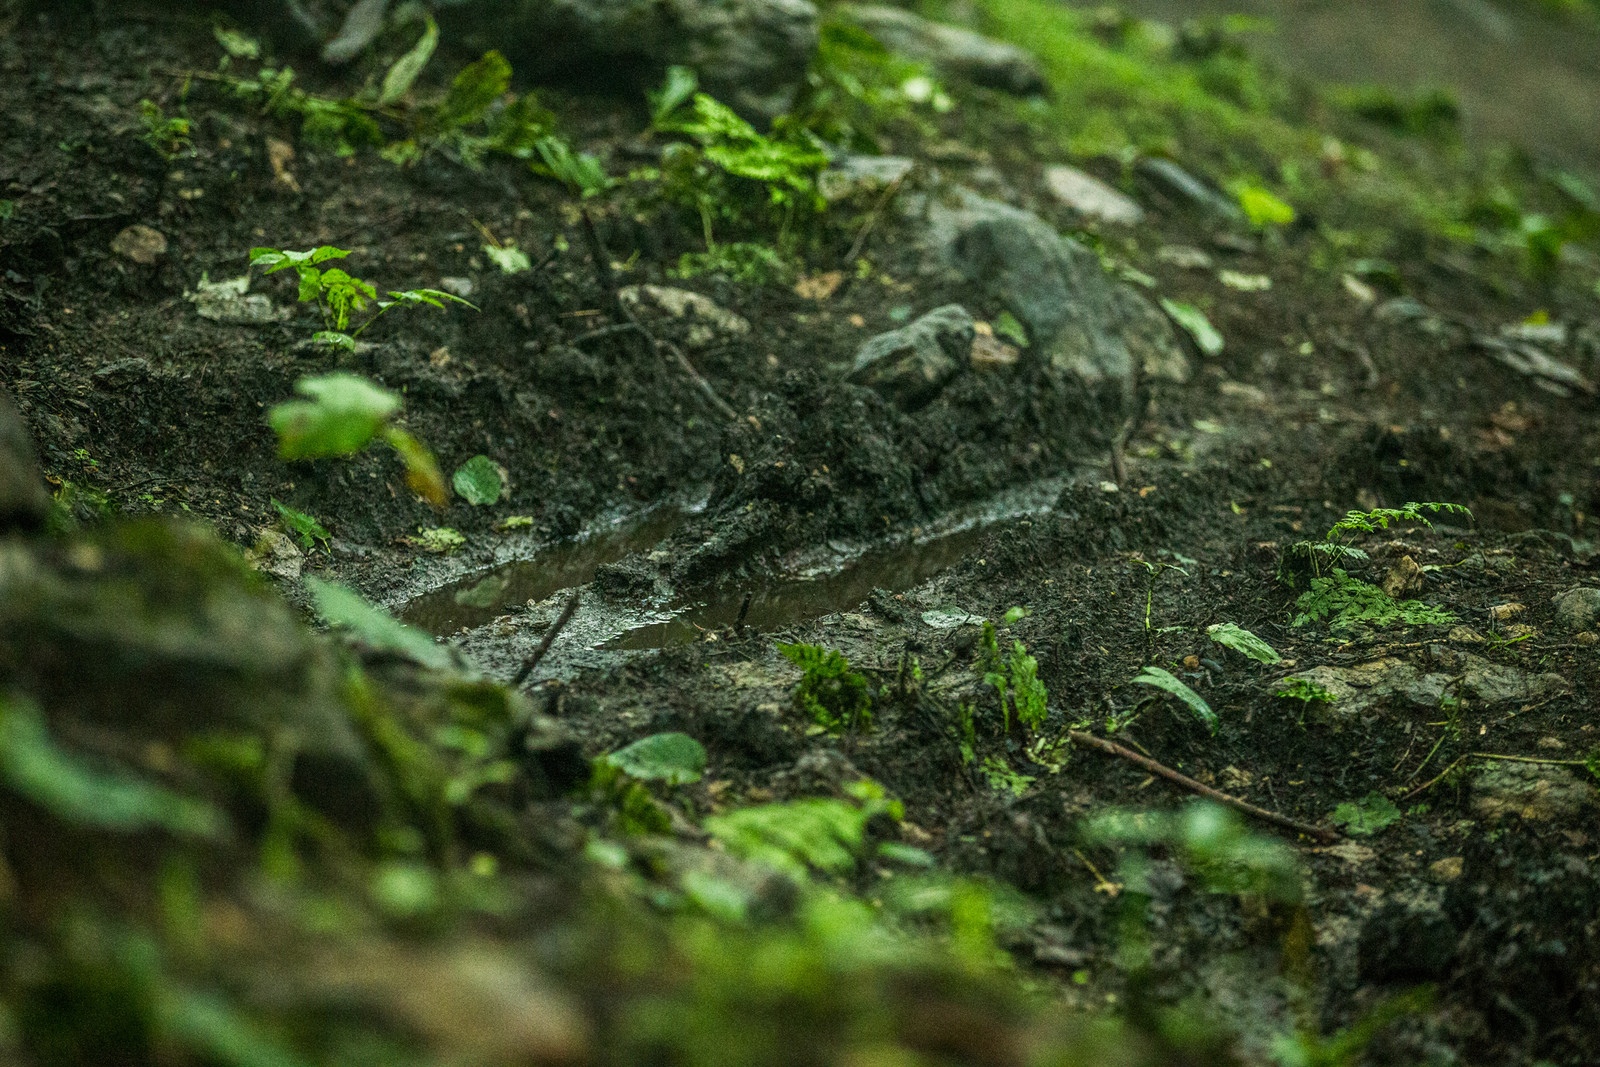 Ruts, rocks, mud, and green leaves on track - it's all here at Killington.